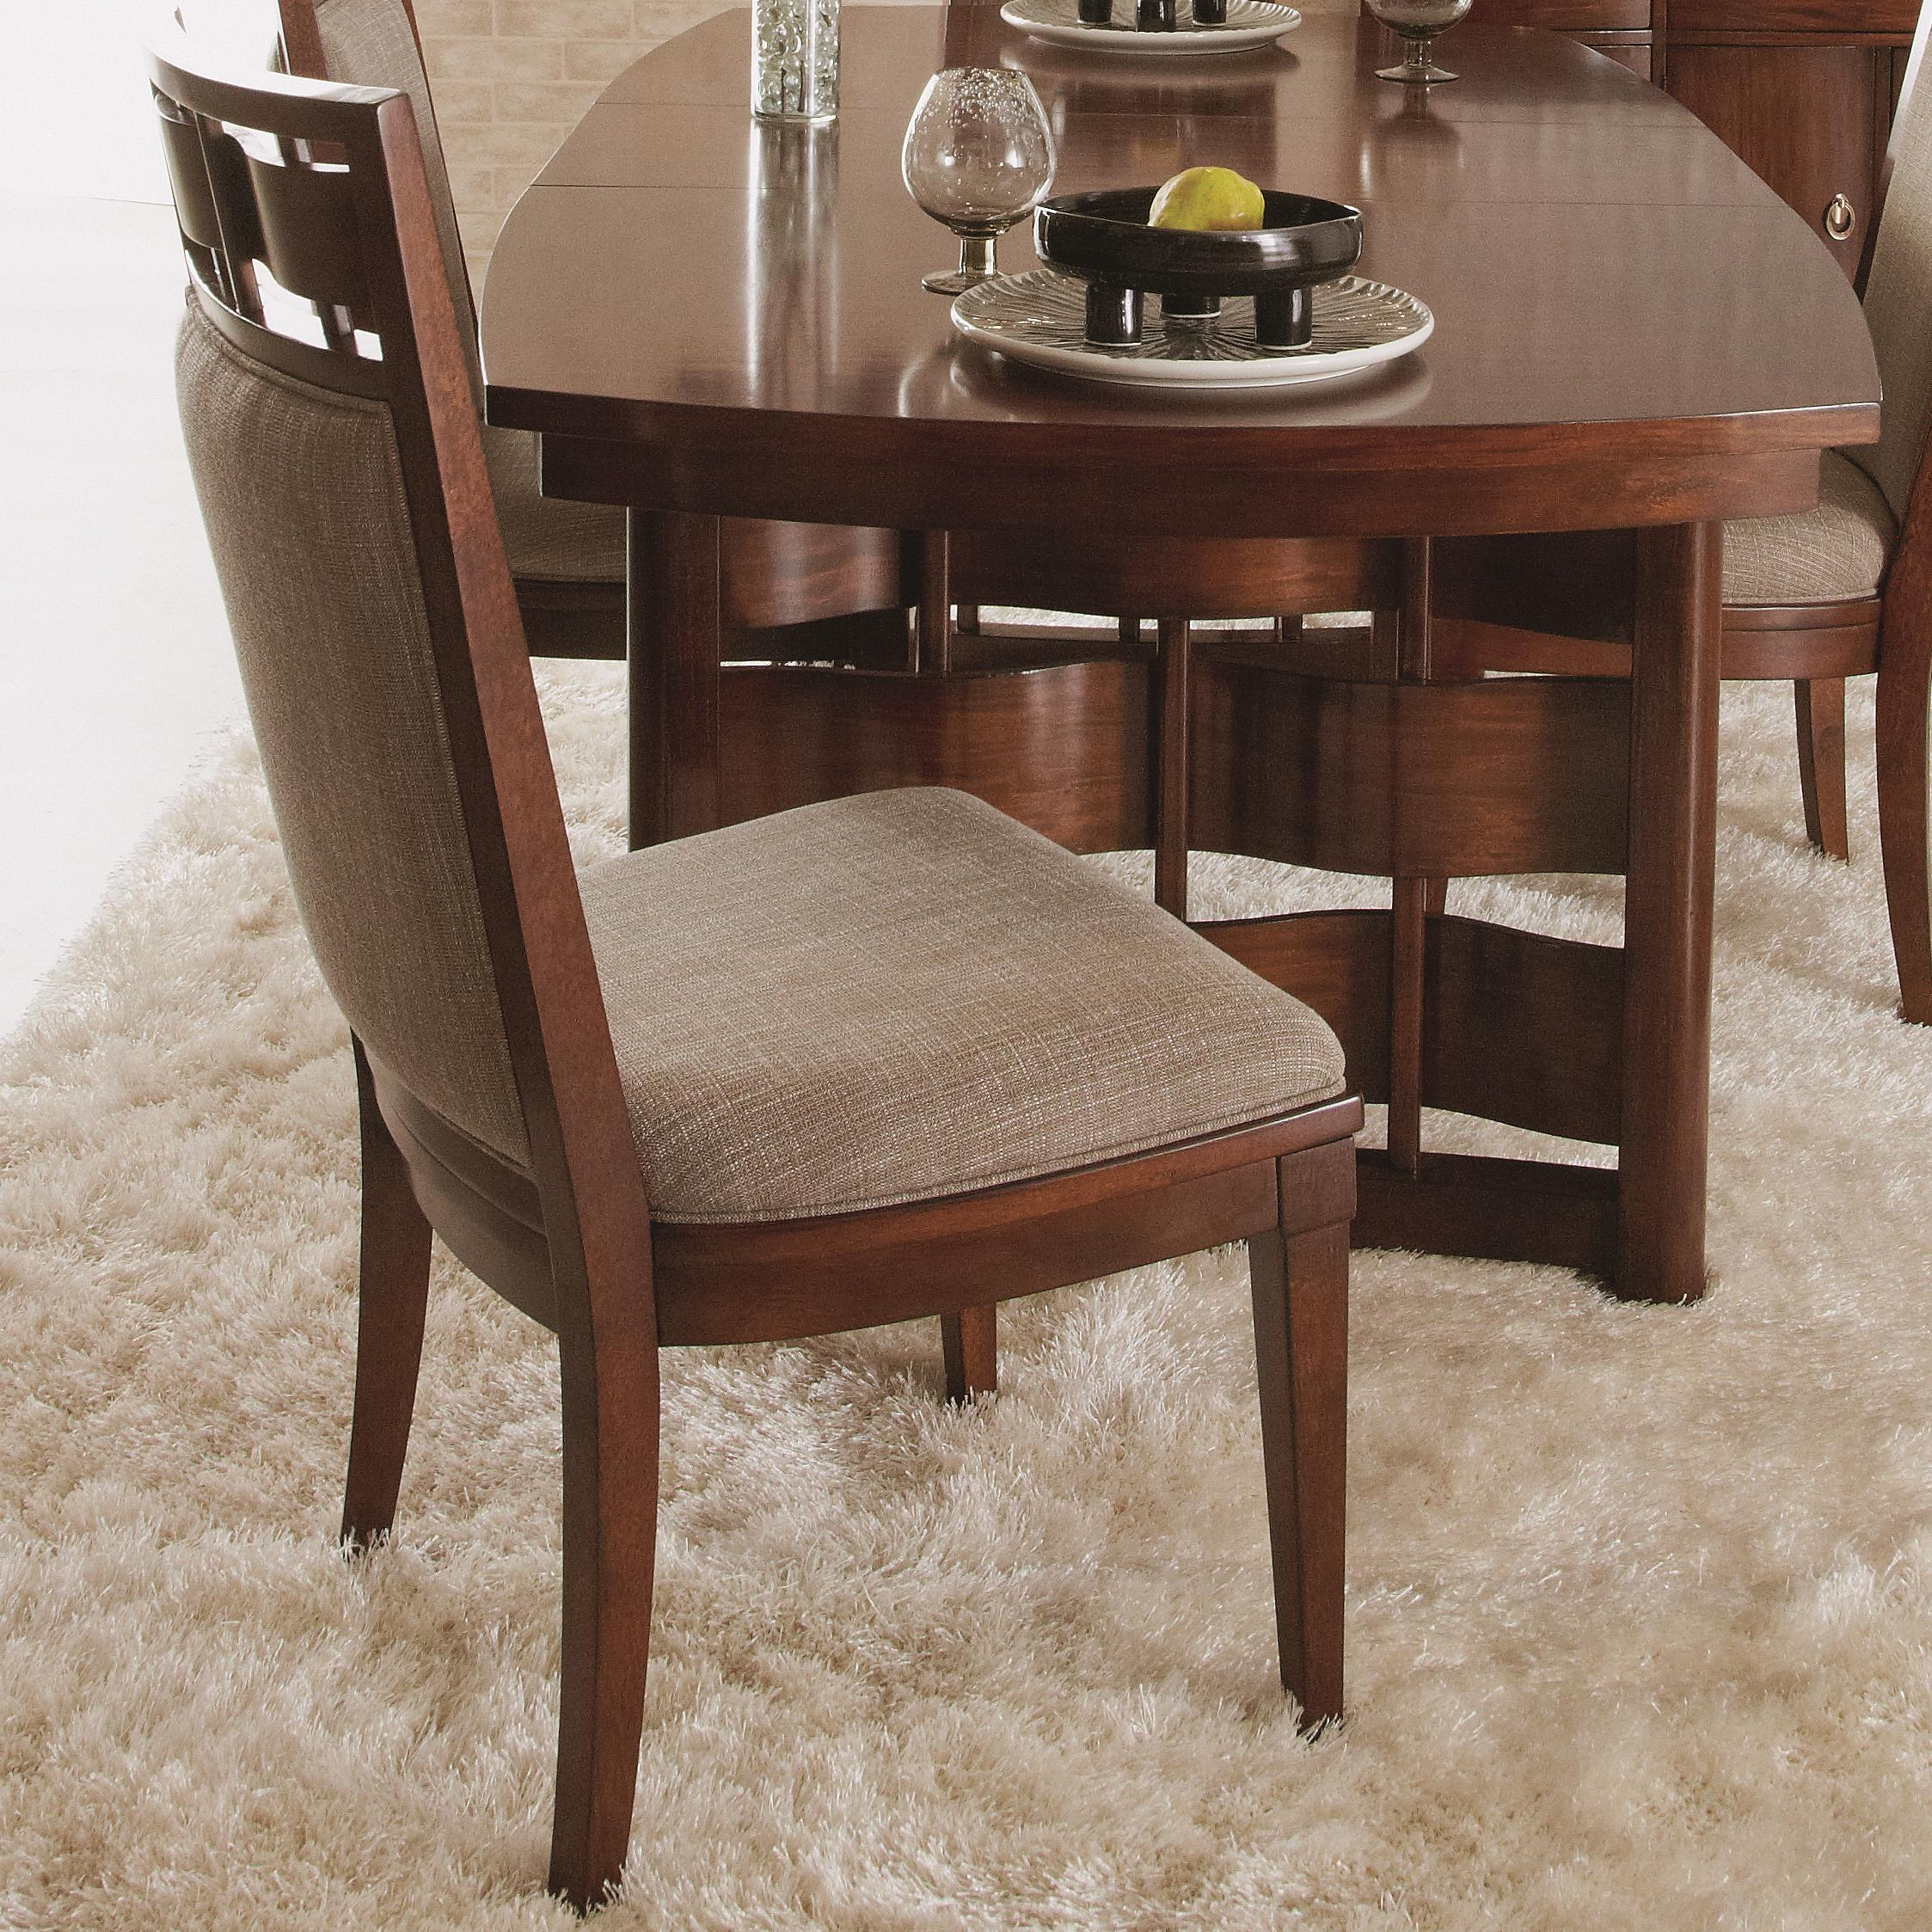 Morris Home Furnishings Augusta Augusta Dining Side Chair - Item Number: 697-434